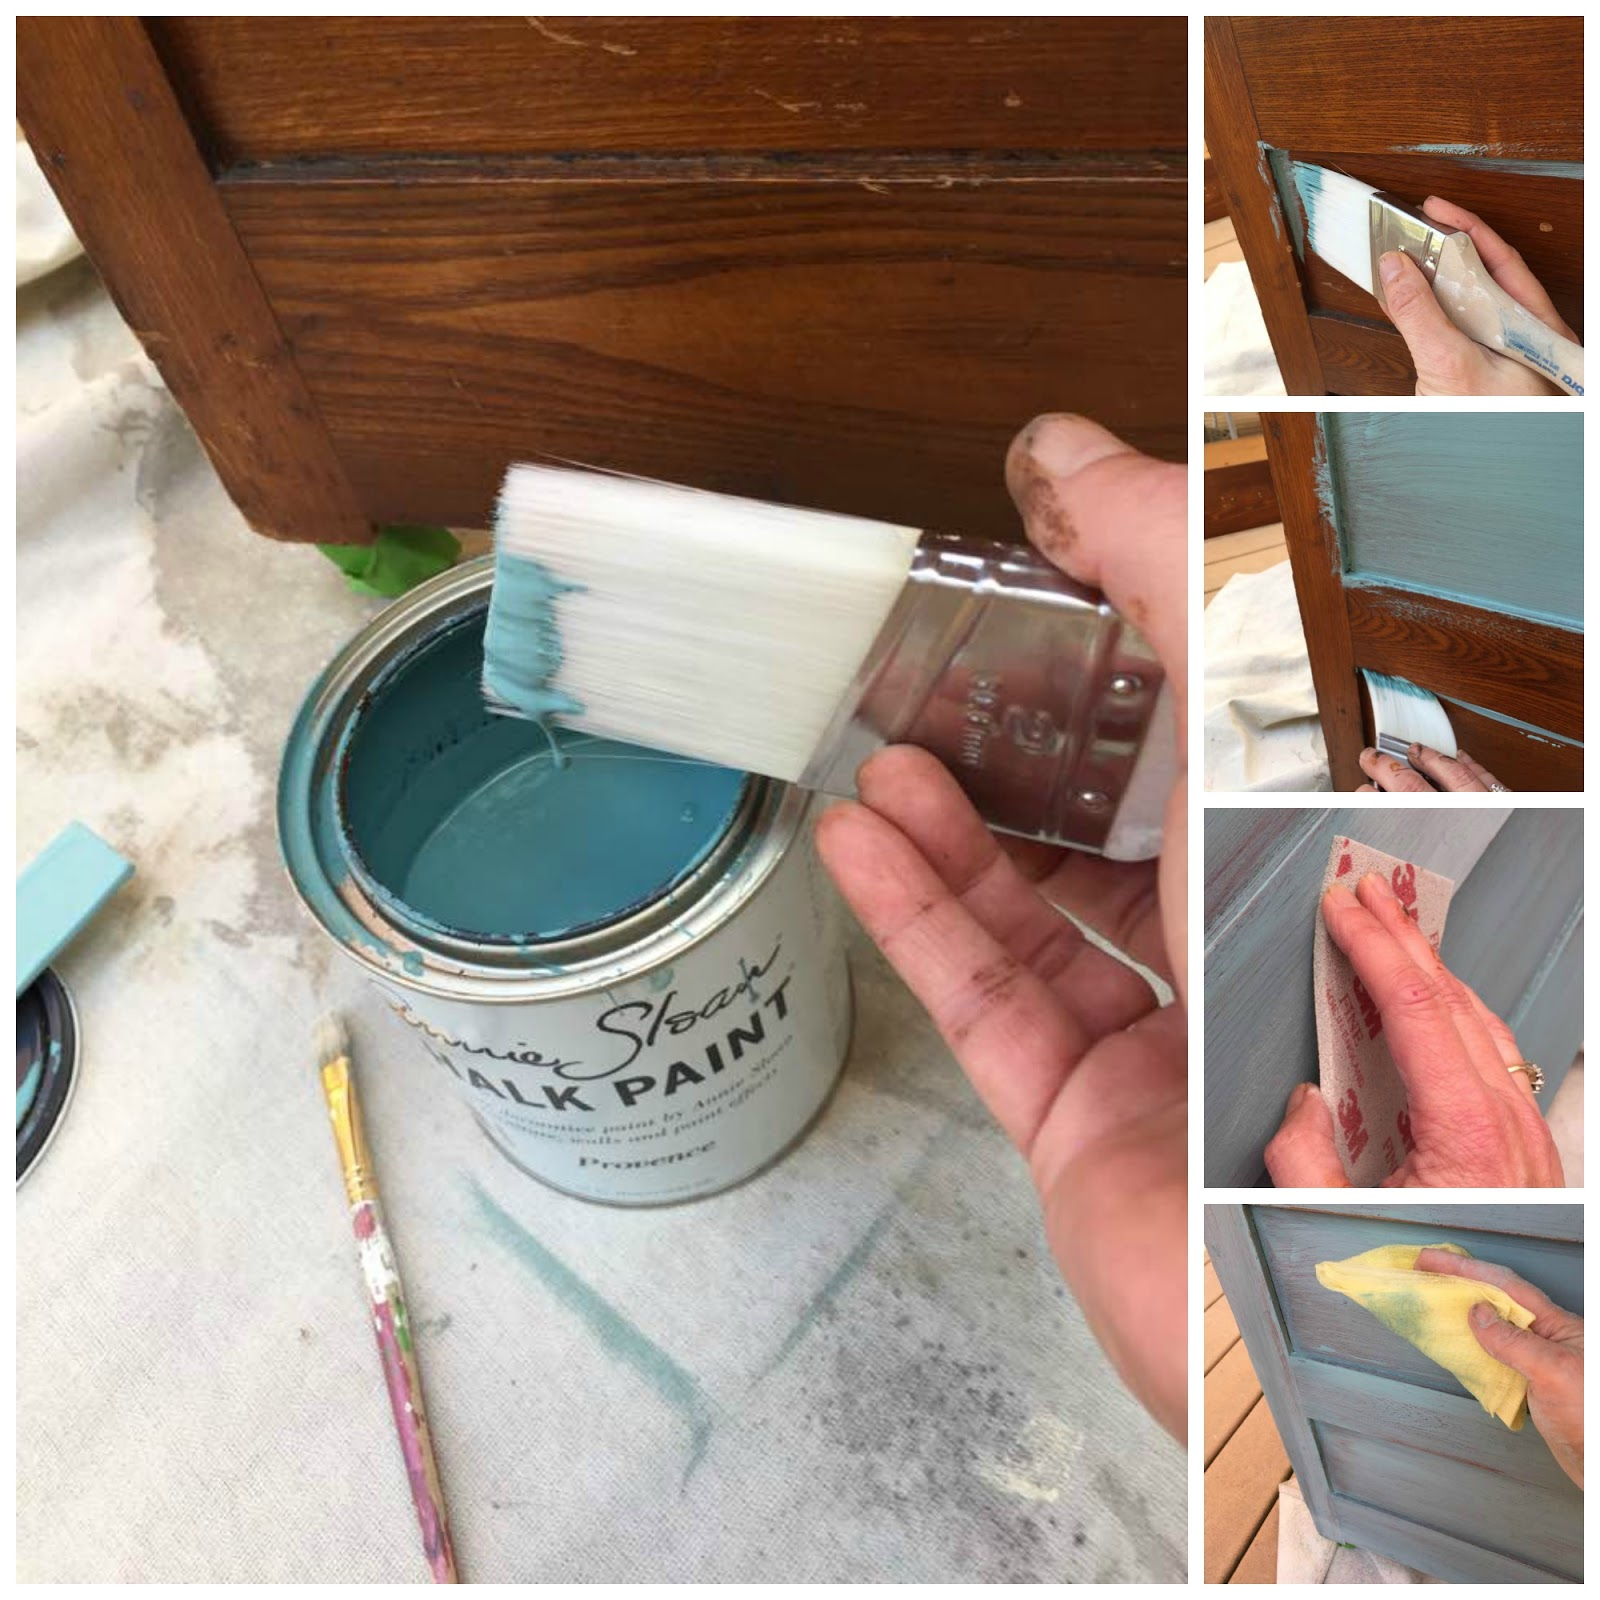 Apply thin coats of paint for a rustic finish